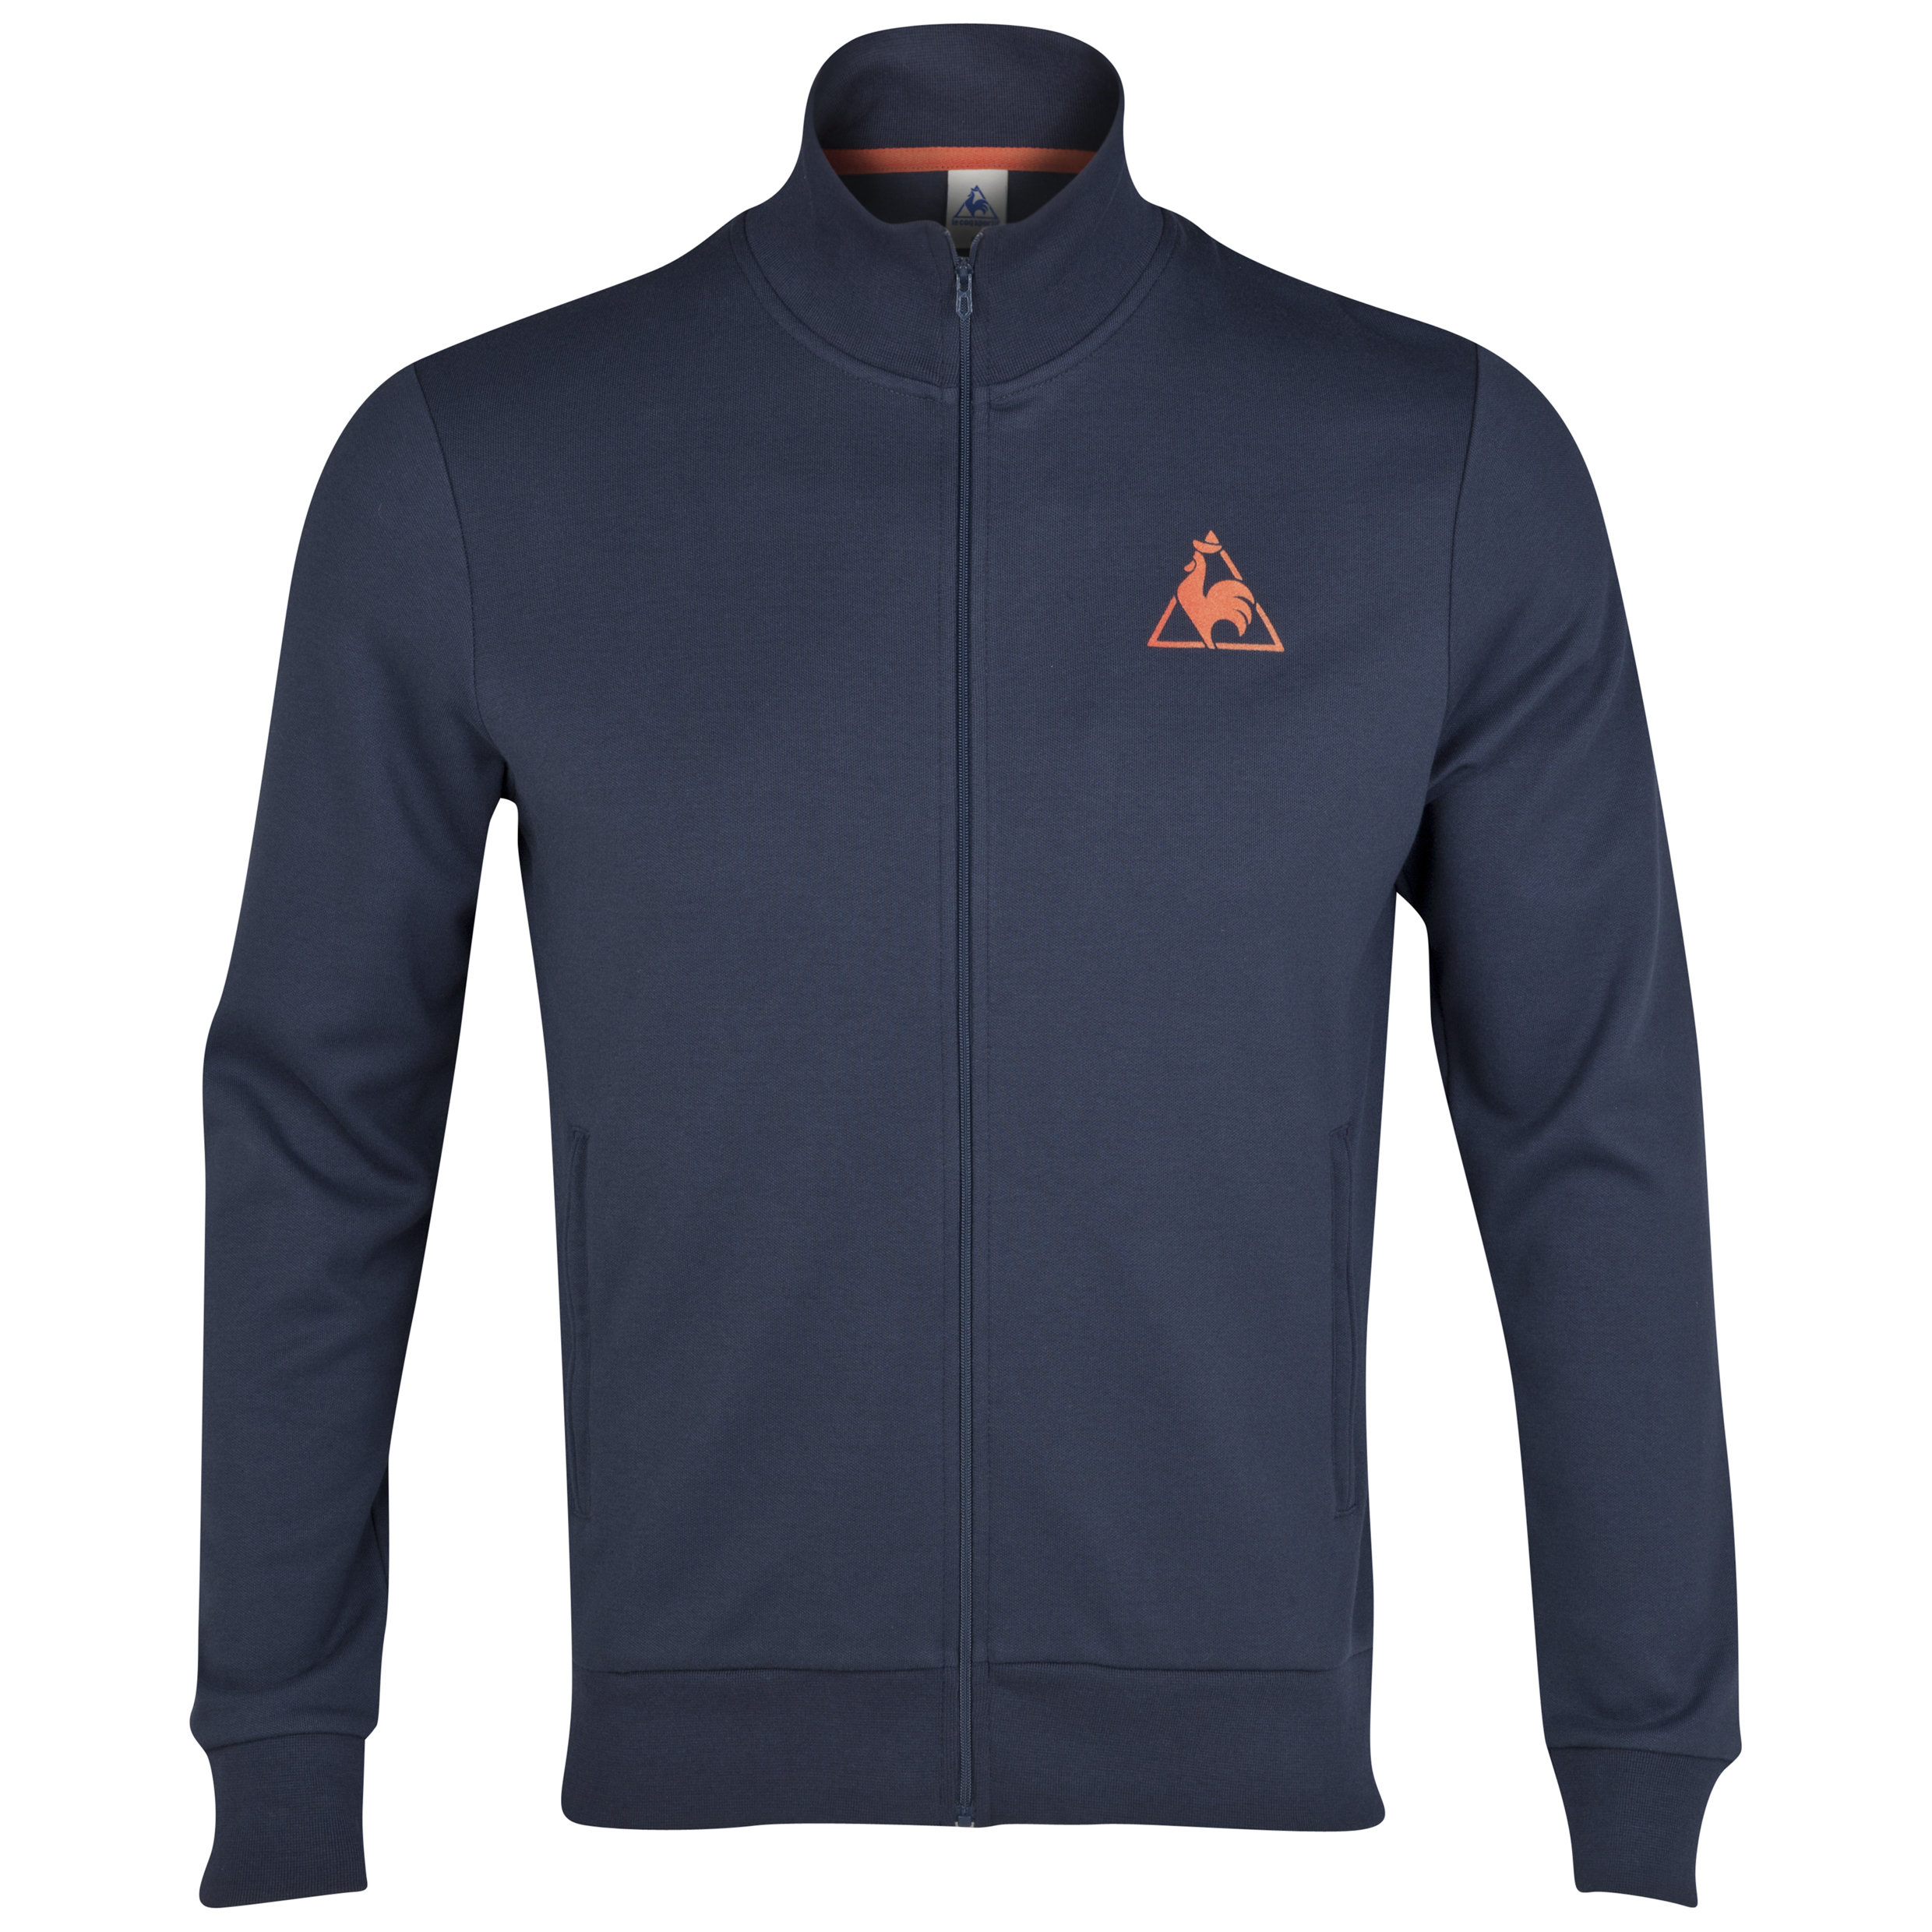 Le Coq Sportif Chronic Track Jacket - Eclipse